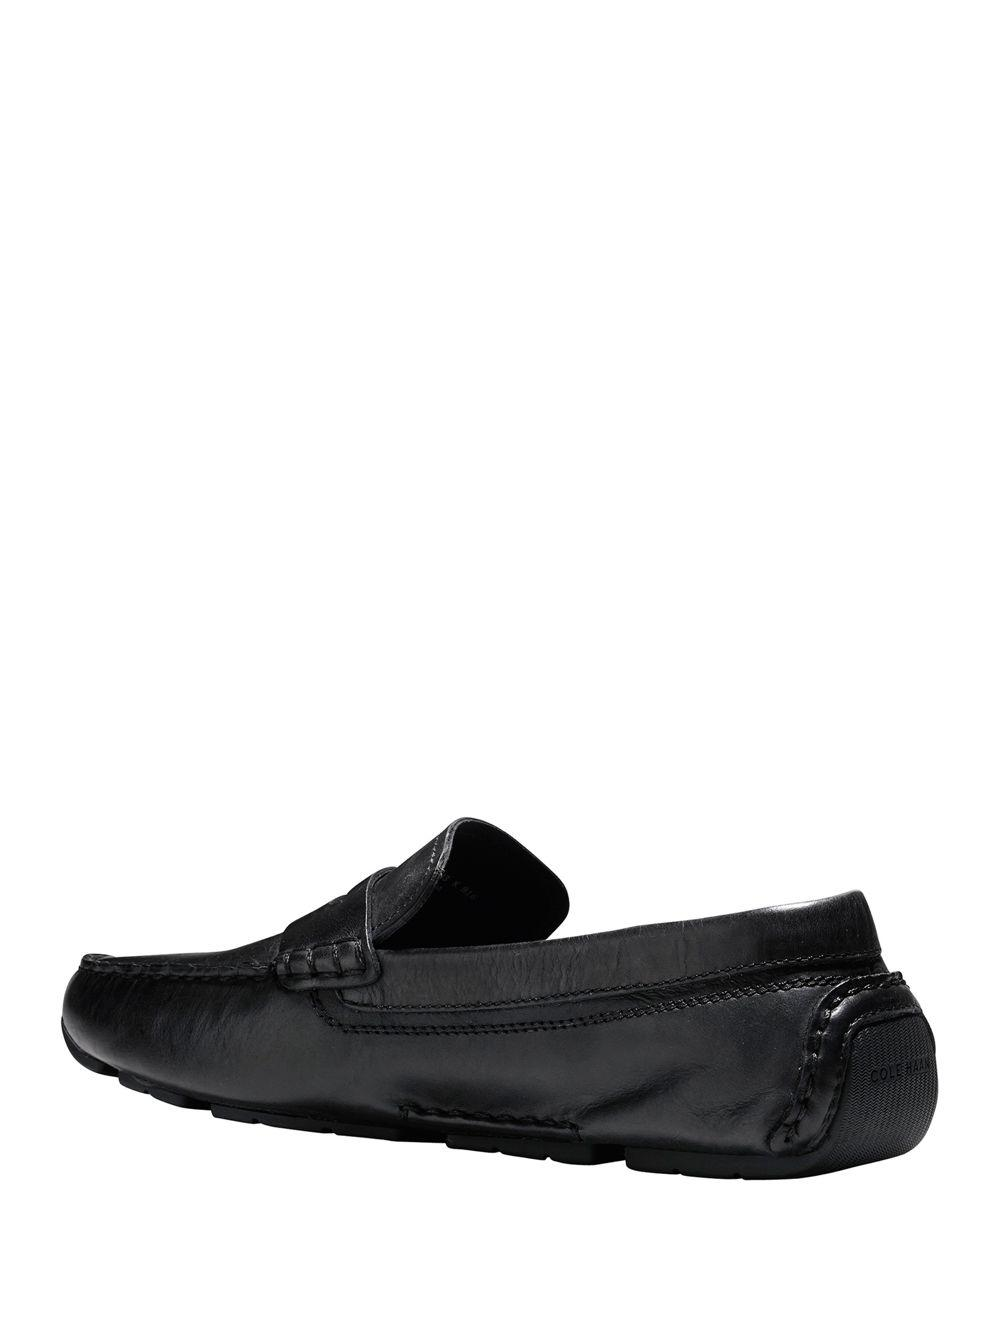 2ac14eb9df5 Cole Haan Kelson Penny Driver Leather Moccasins in Black for Men - Save 18%  - Lyst